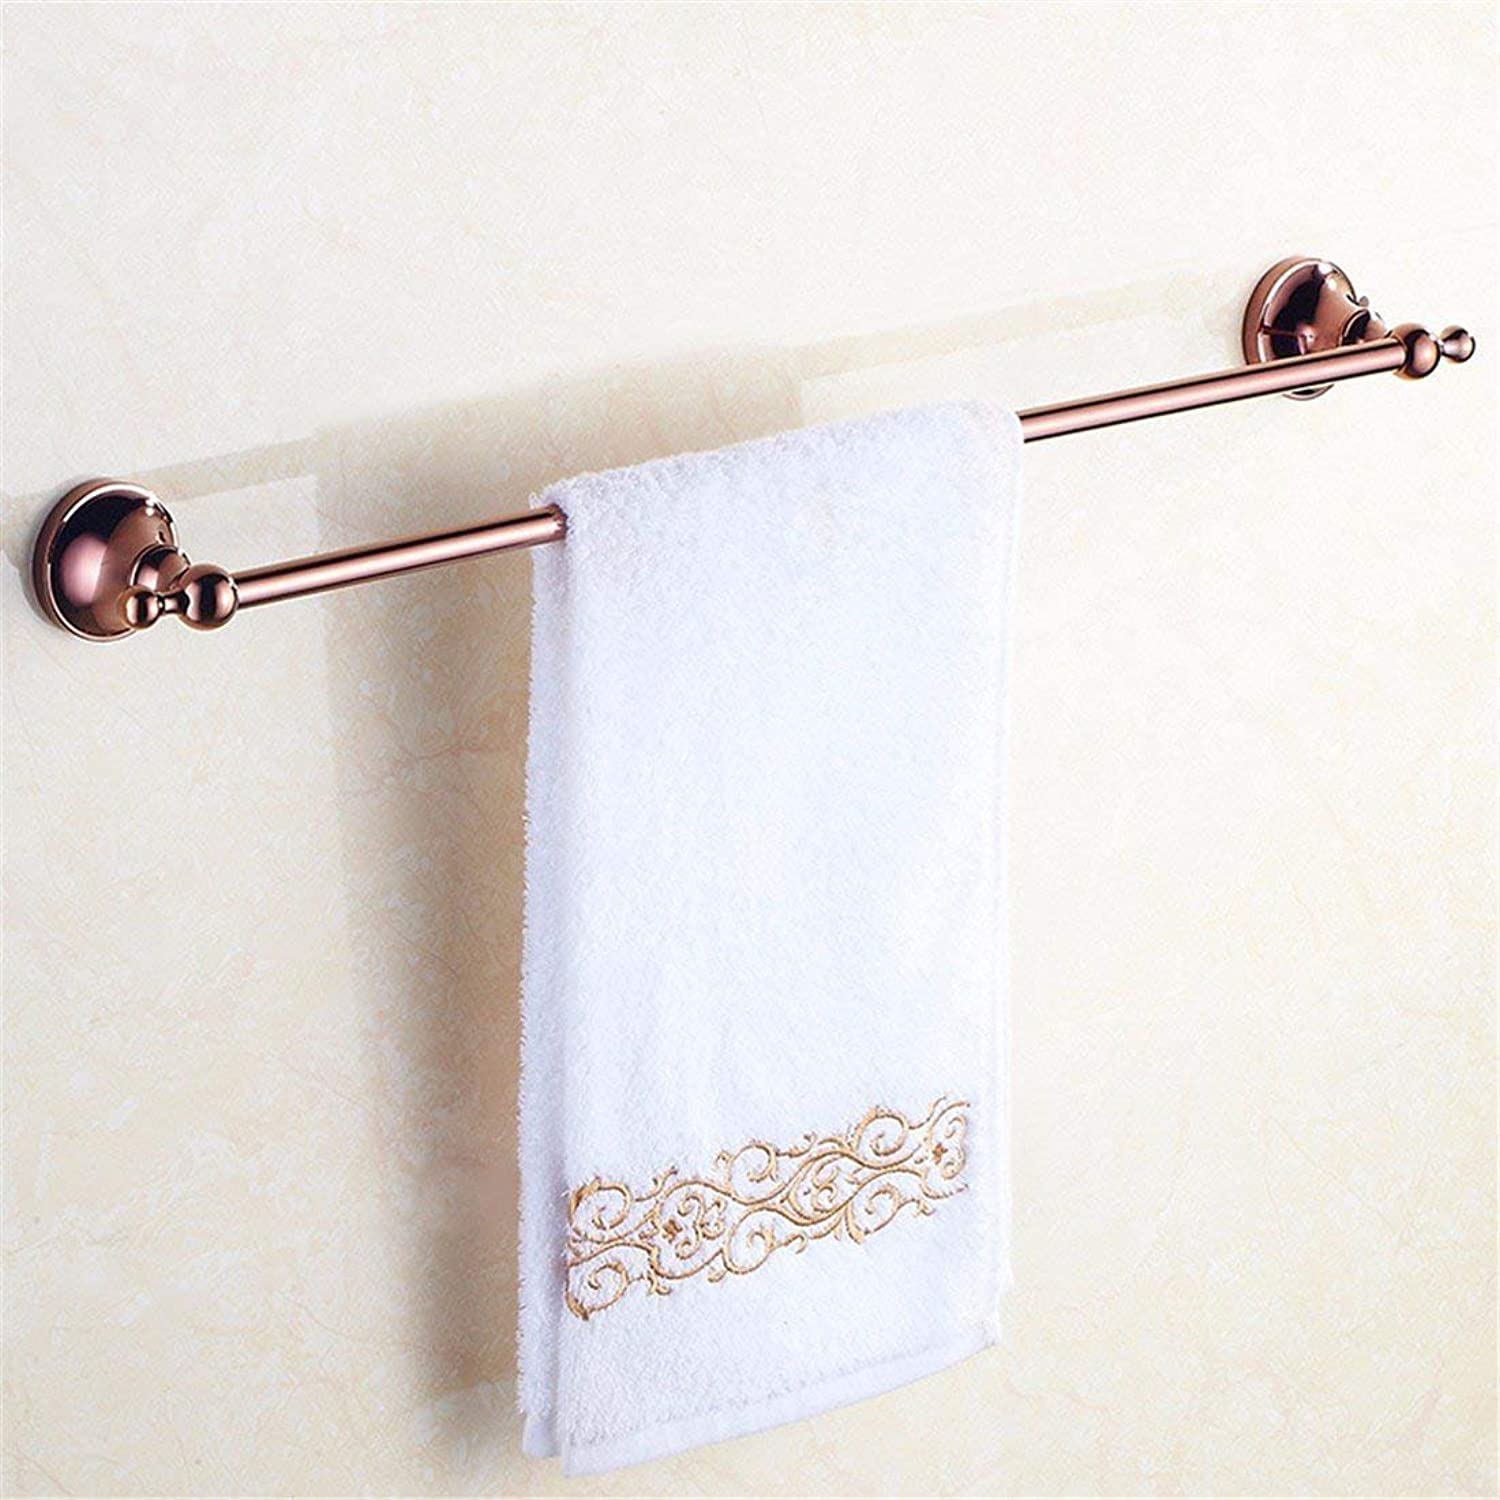 Accessories in Pink gold a Private Bathroom in The Copper, The Support to Folding Towels, Single Rod